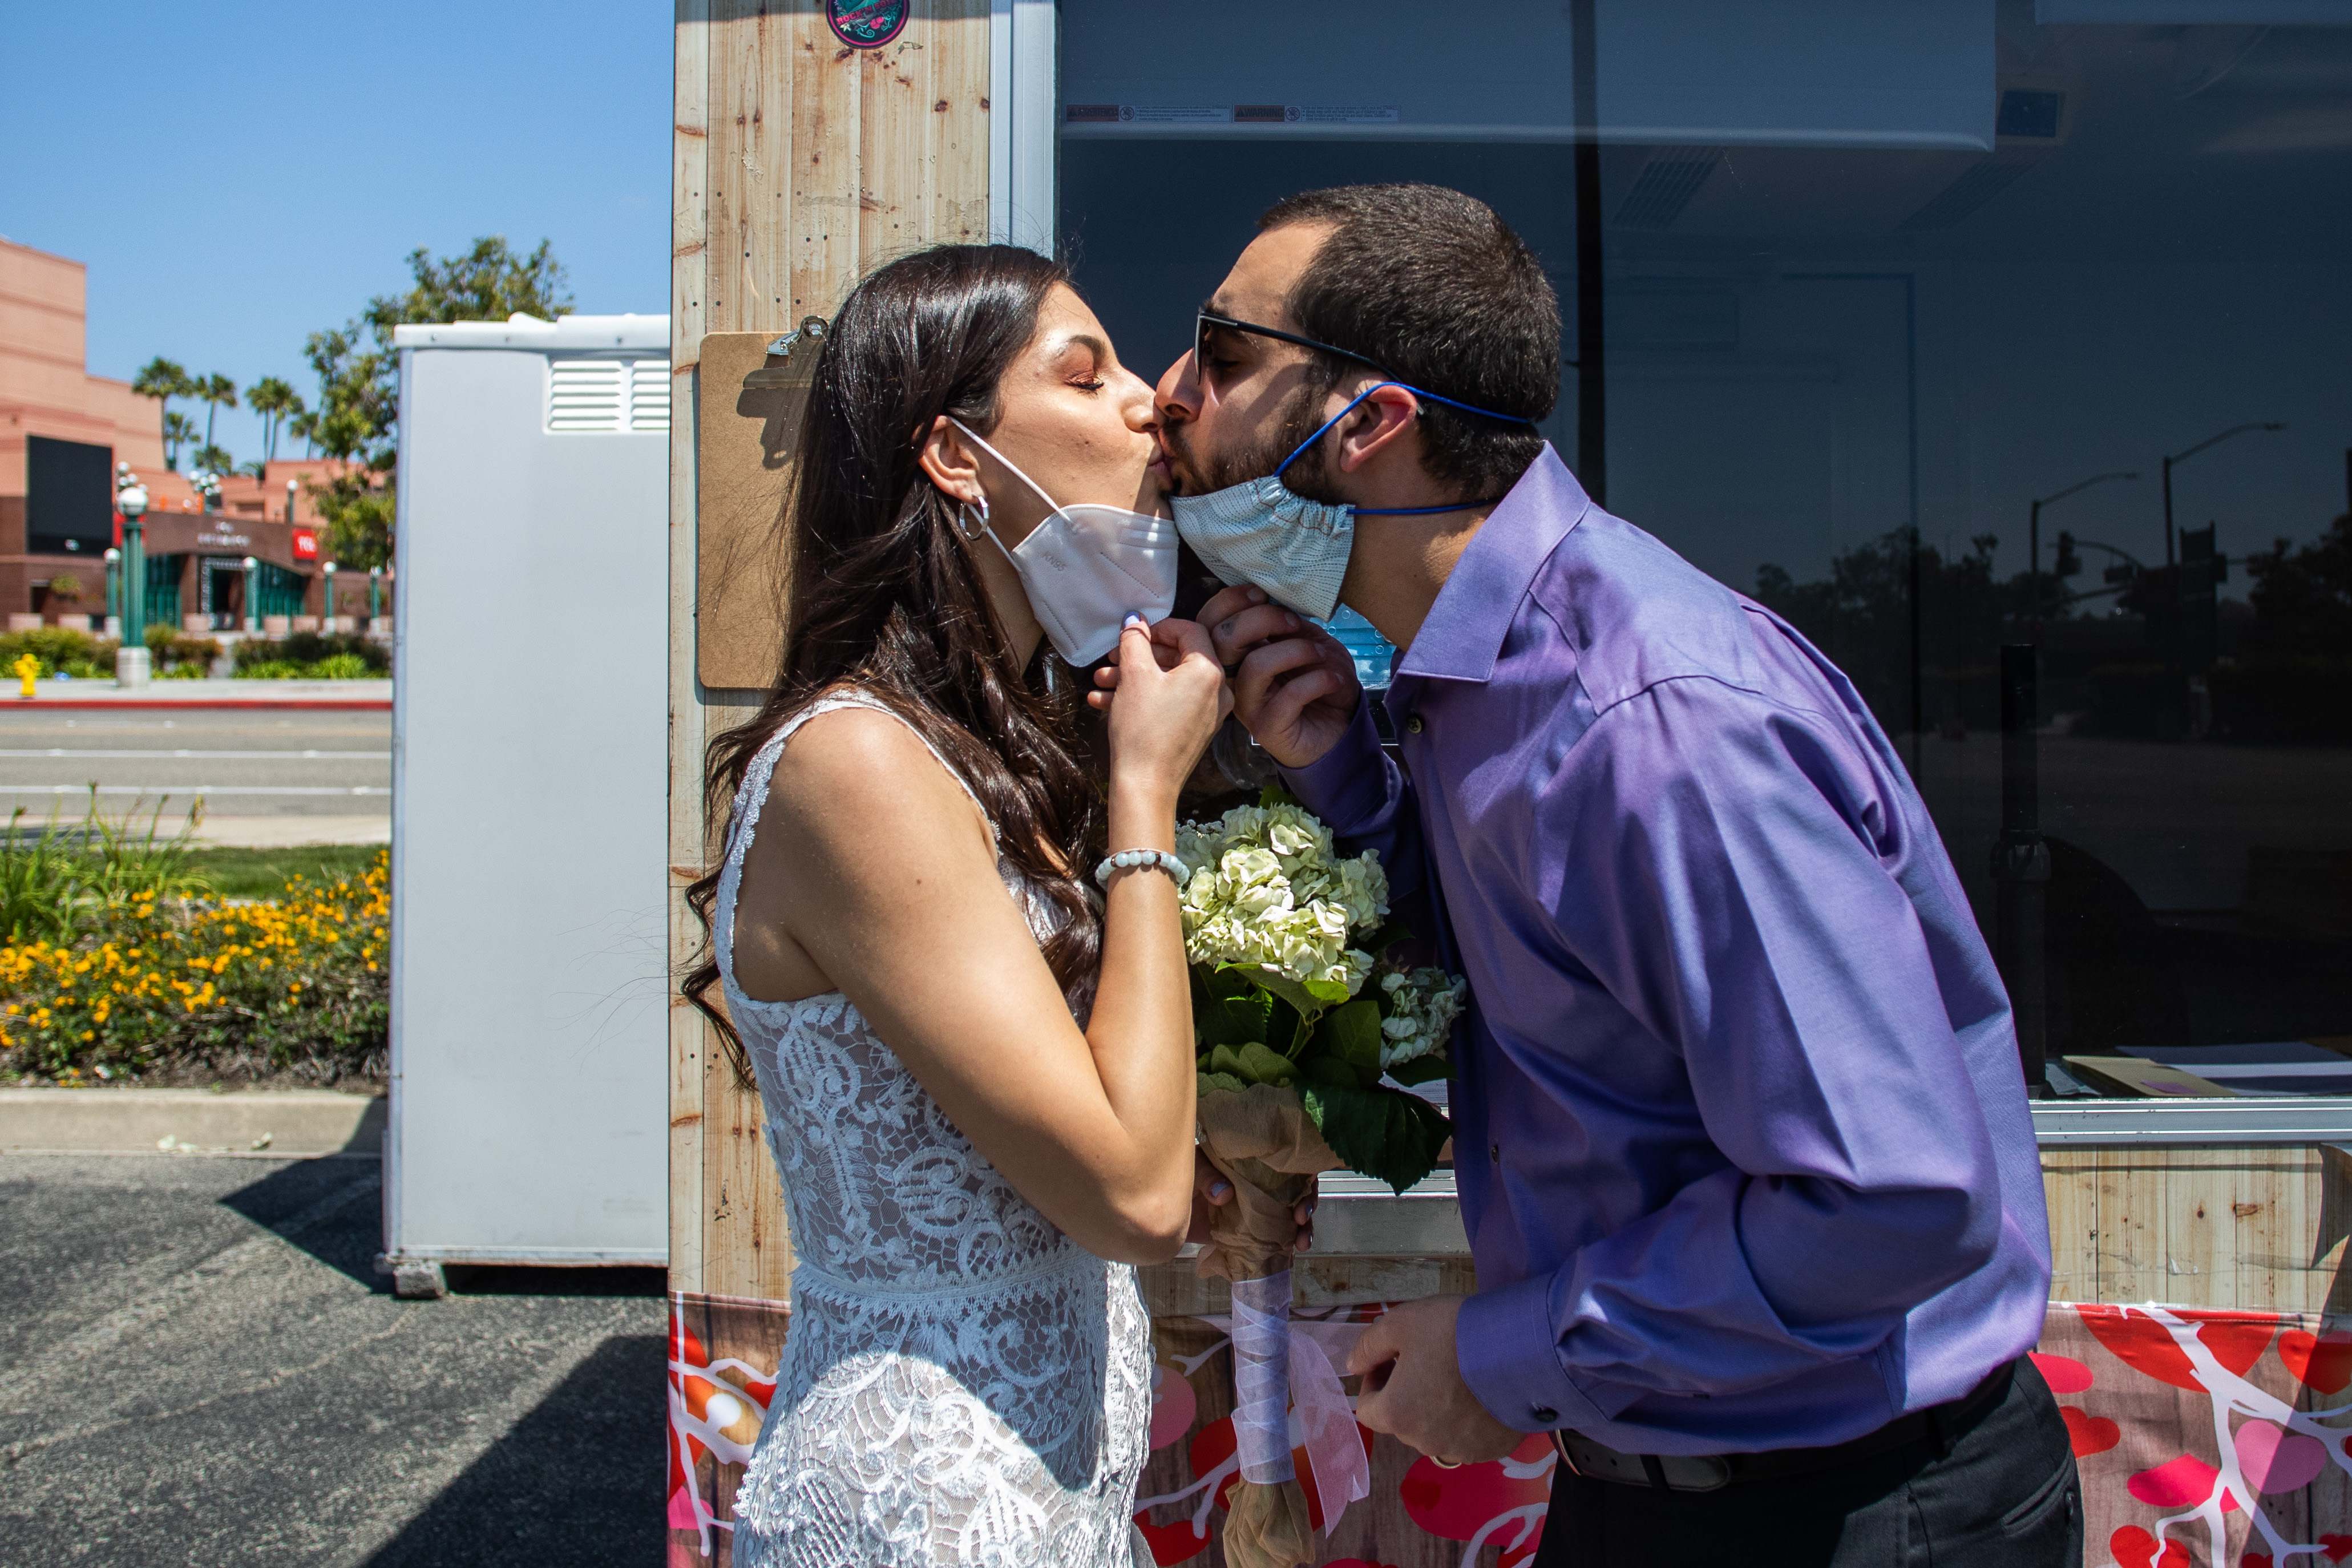 Tiffany McCaryan (L) and Kev McCaryan take off their face masks to kiss after they were married by a clerk recorder at the Honda Center parking lot on April 21, 2020 in Anaheim, California. (Photo by APU GOMES/AFP via Getty Images)